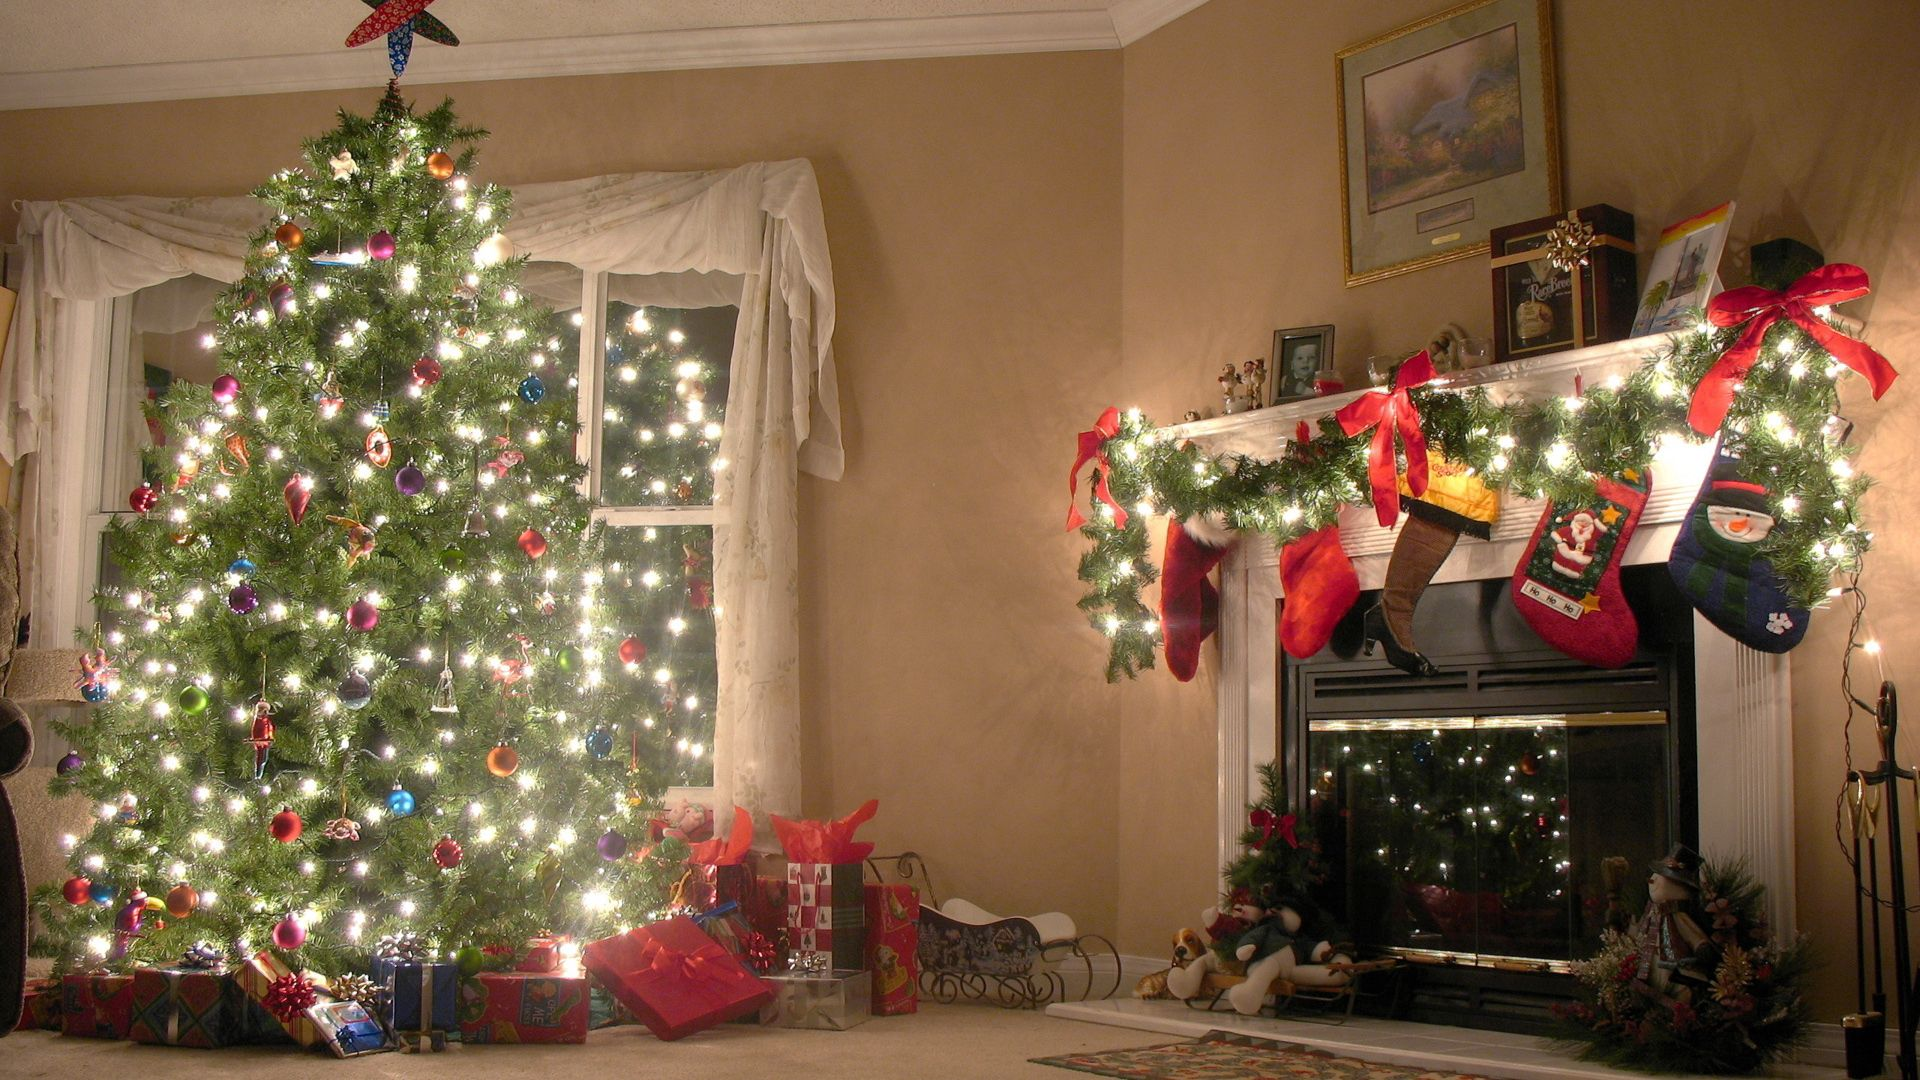 108156 download wallpaper Holidays, New Year, Decorations, Christmas Tree screensavers and pictures for free